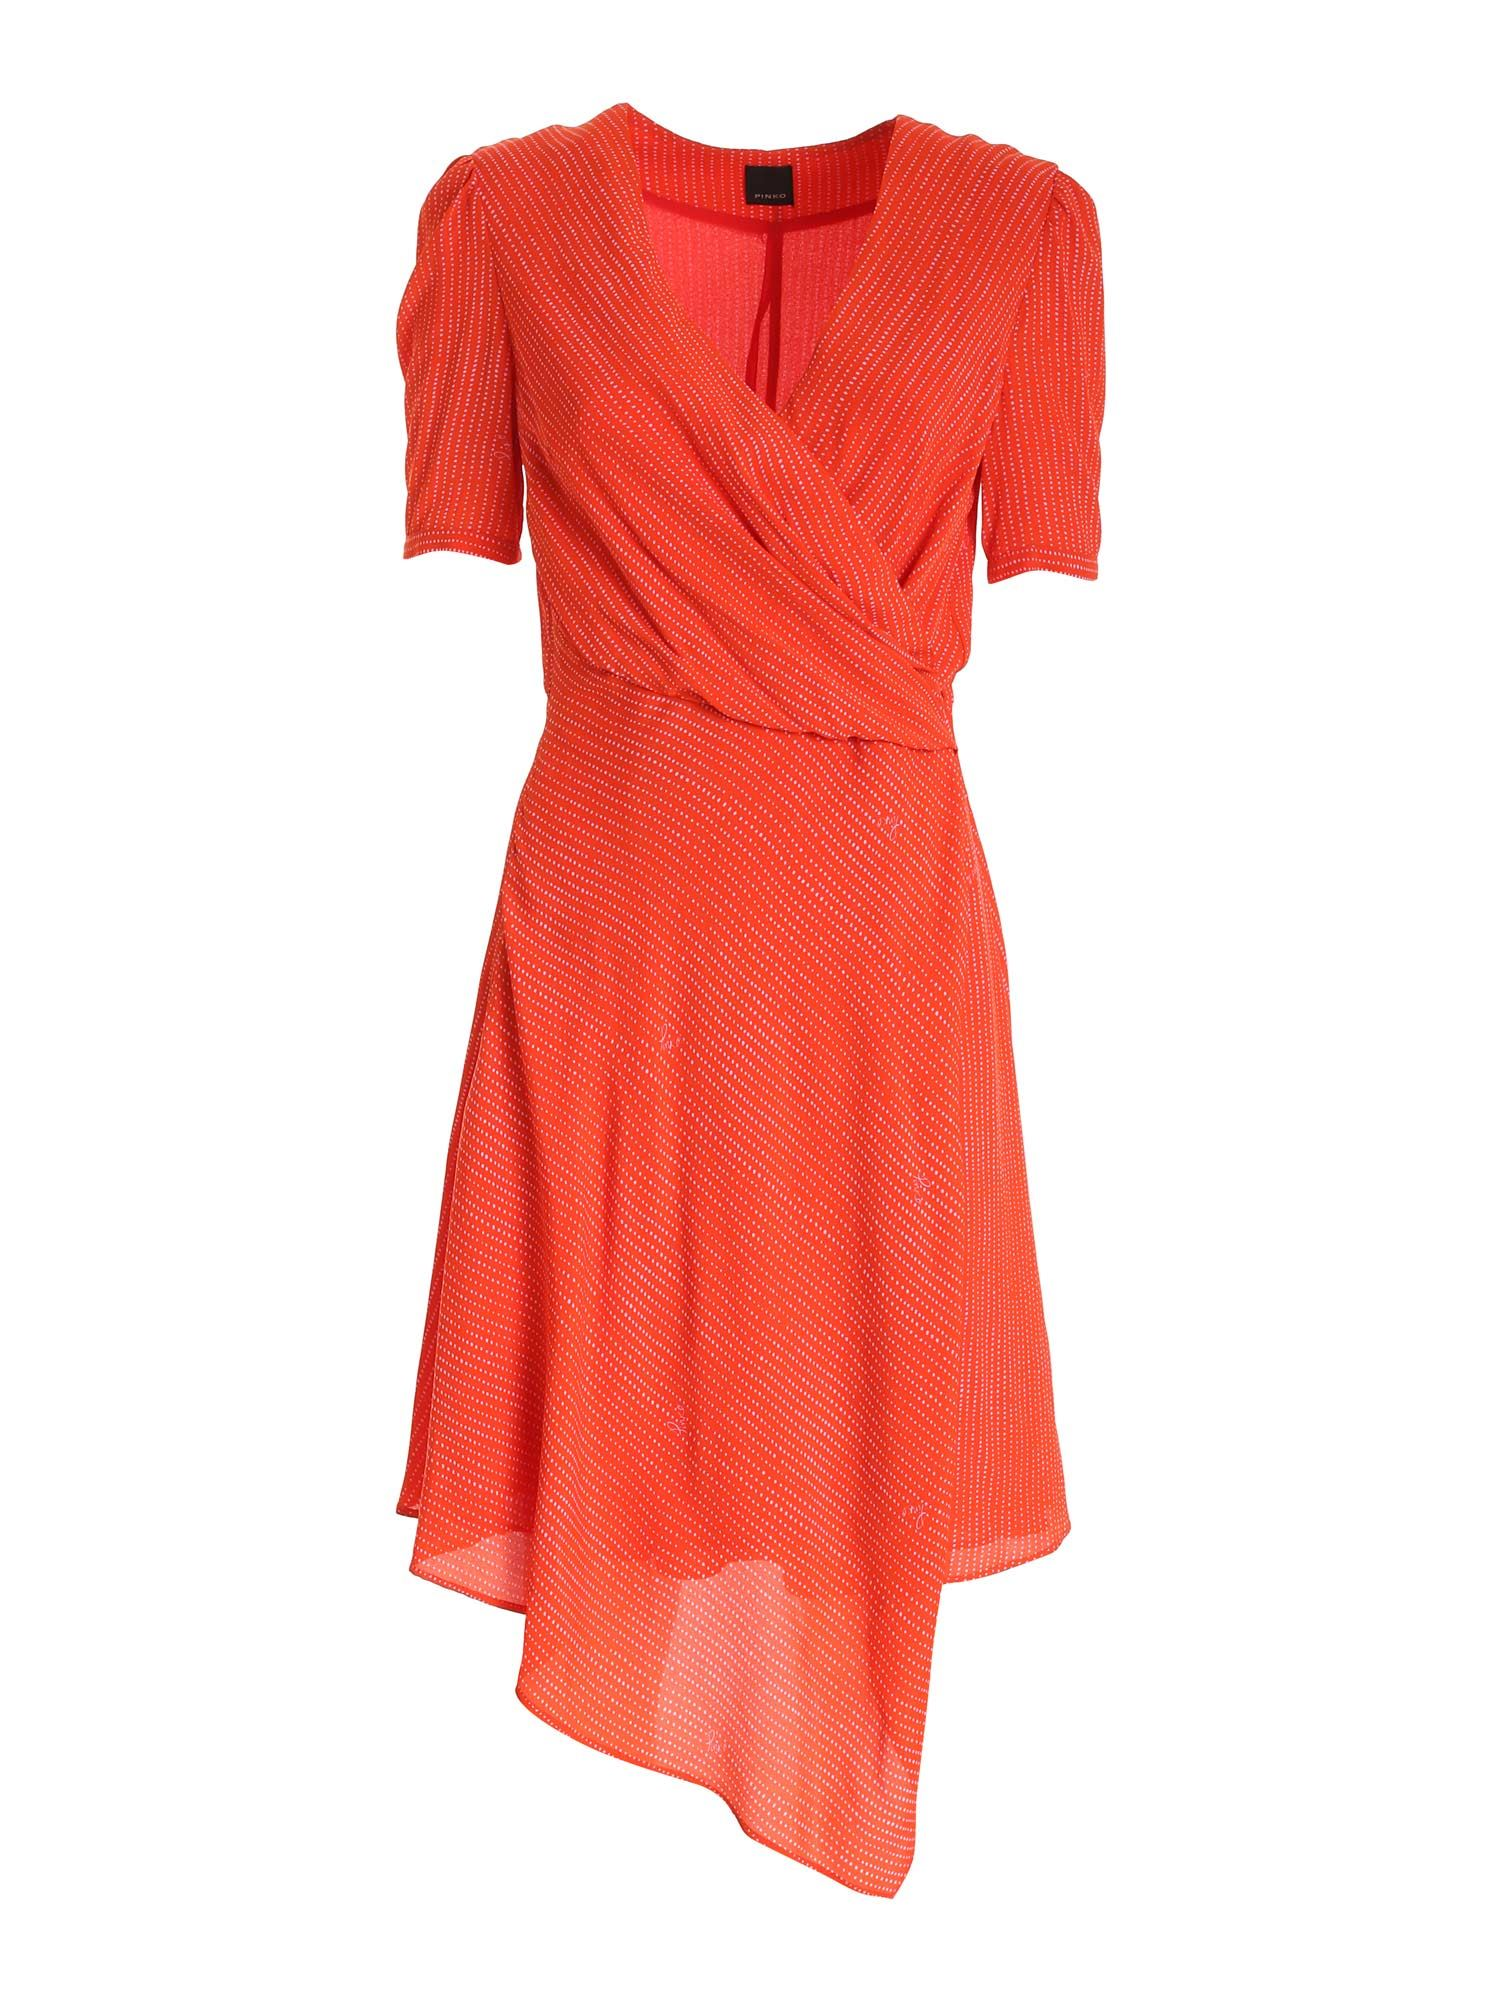 Pinko Dresses PINKO MAGIO DRESS IN CORAL RED